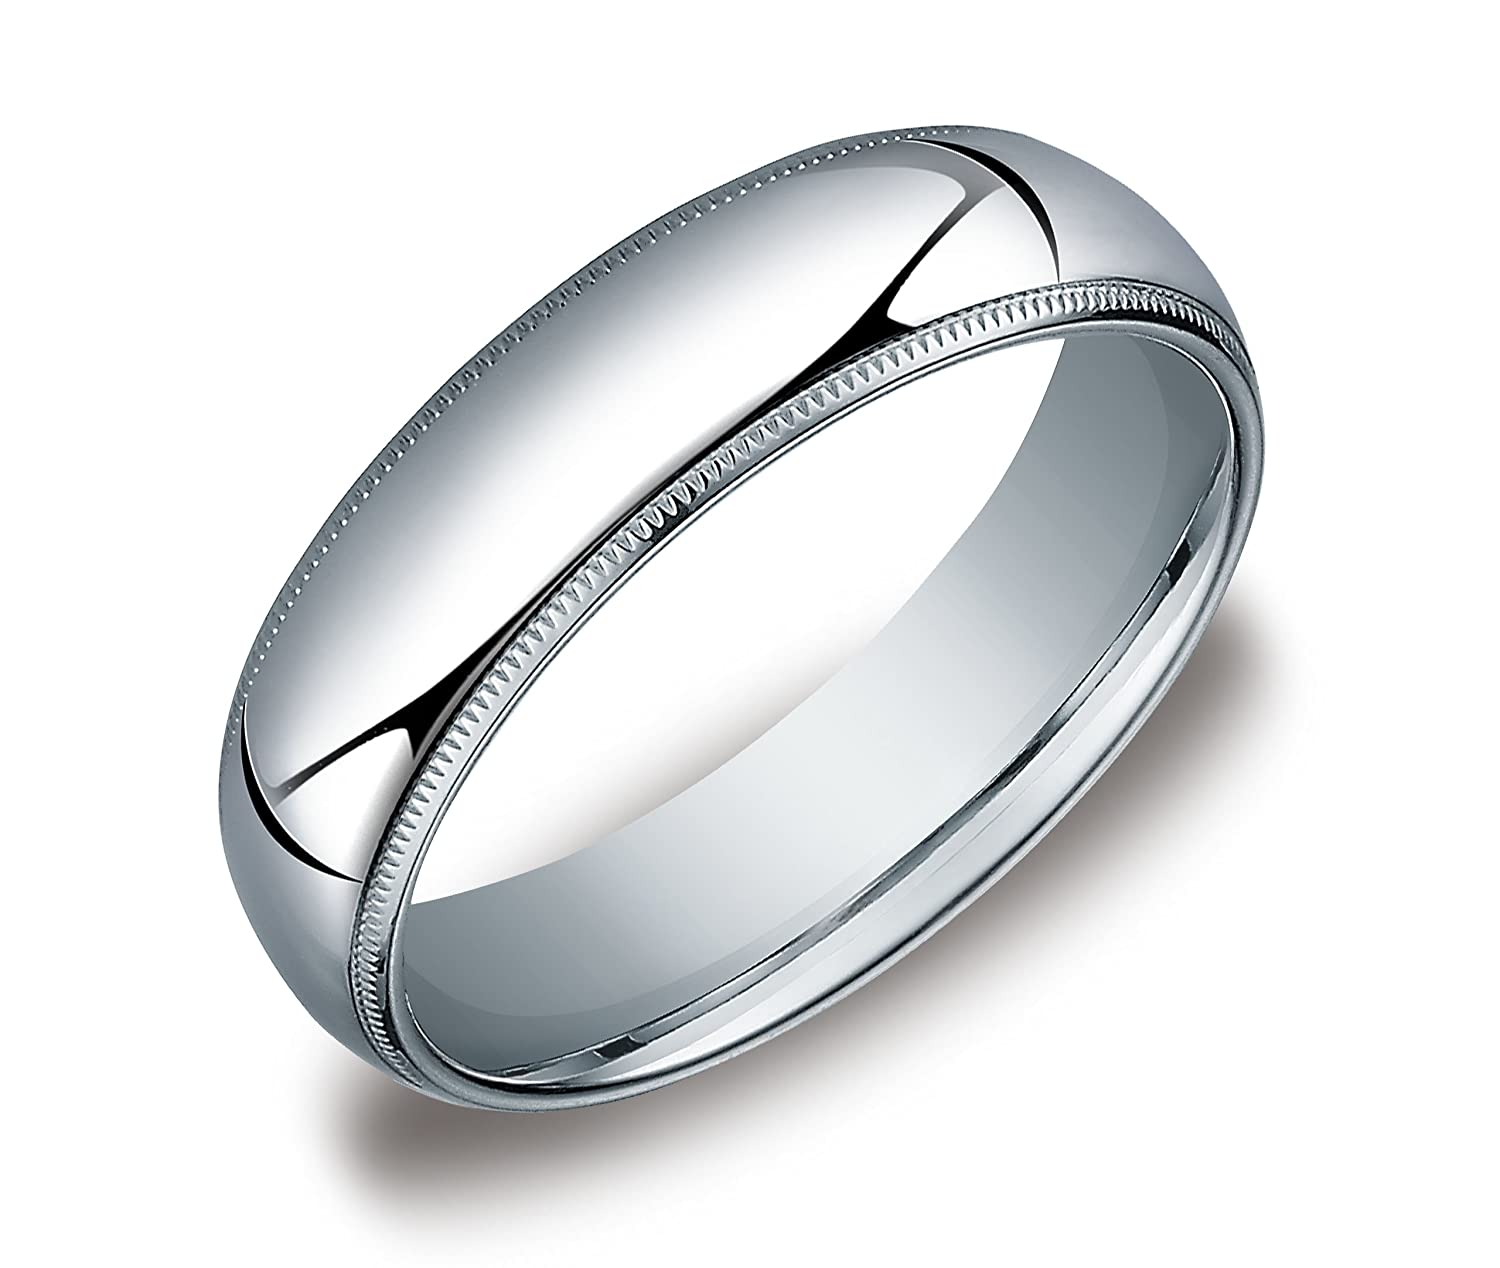 japan band bands milgrain p wedding perspective platinum in kiko products christine jewellers